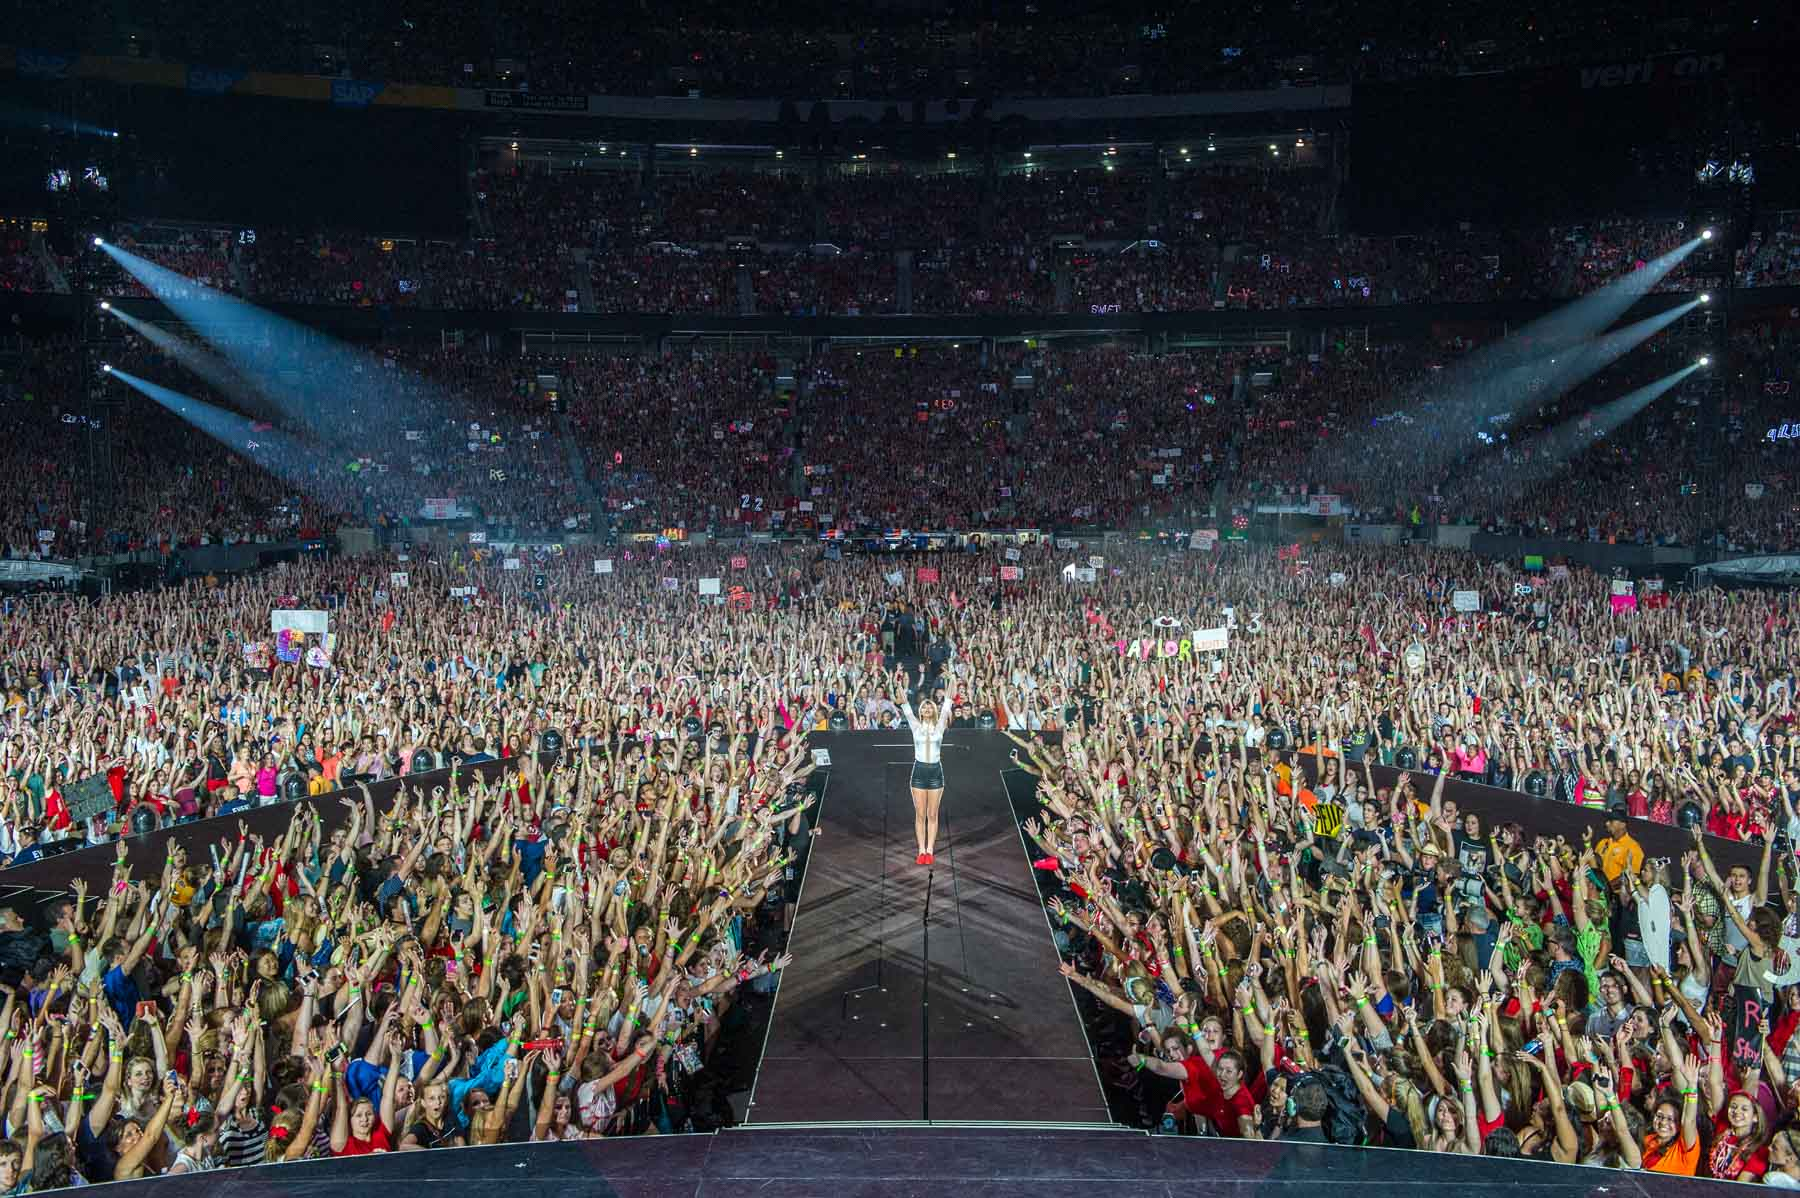 Taylor Swift with Audience